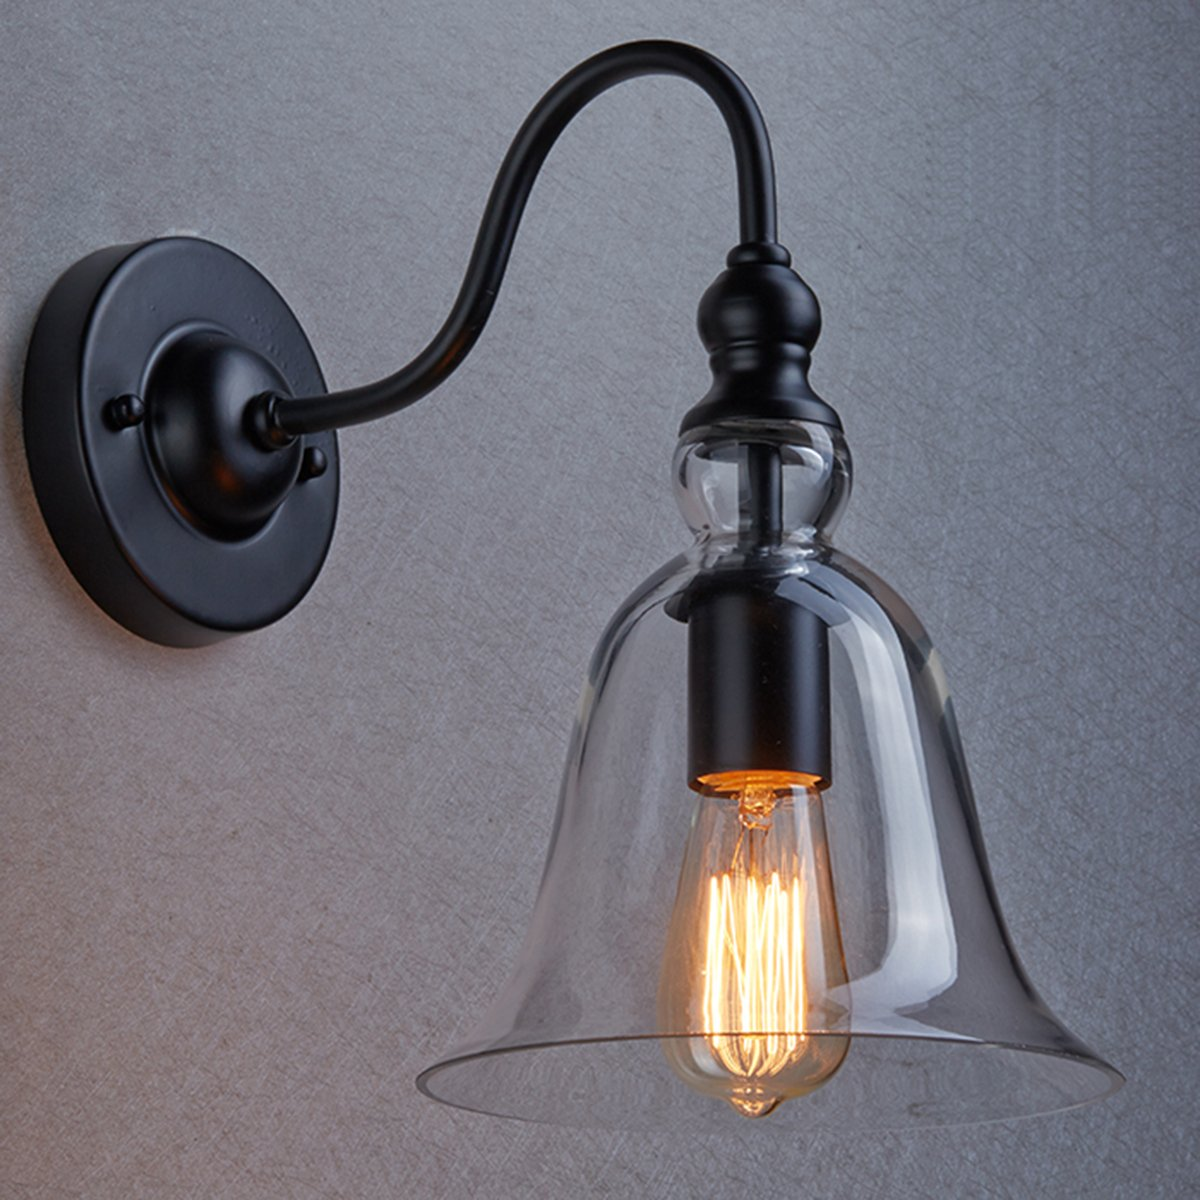 Claxy Ecopower Vintage Wall Mount Lighting 1 Light Glass Bell Shade